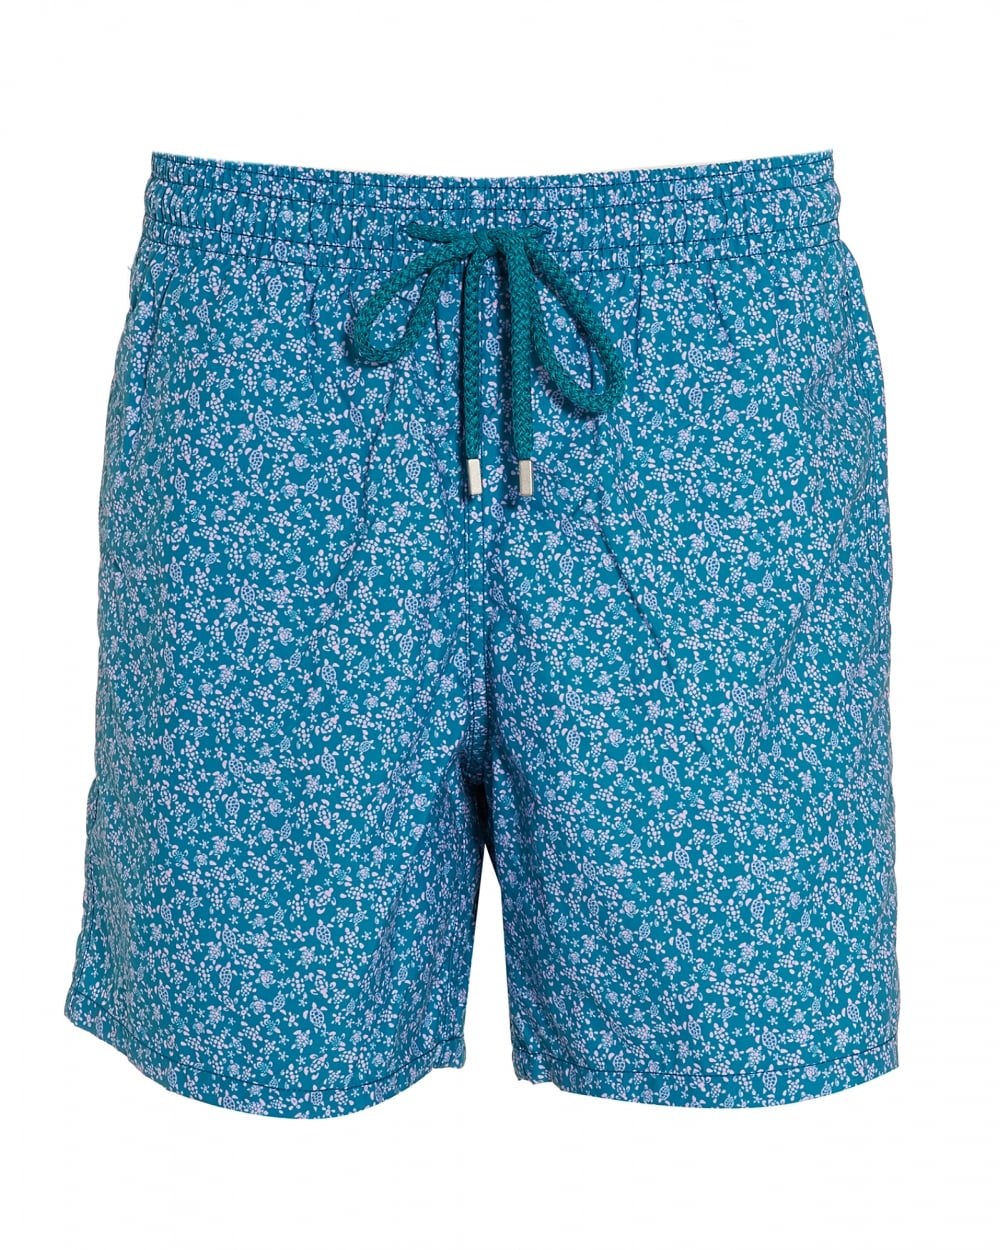 742d06812c Mens Moorea Swim Shorts, Blue Micro Turtle Print Swimming Trunks